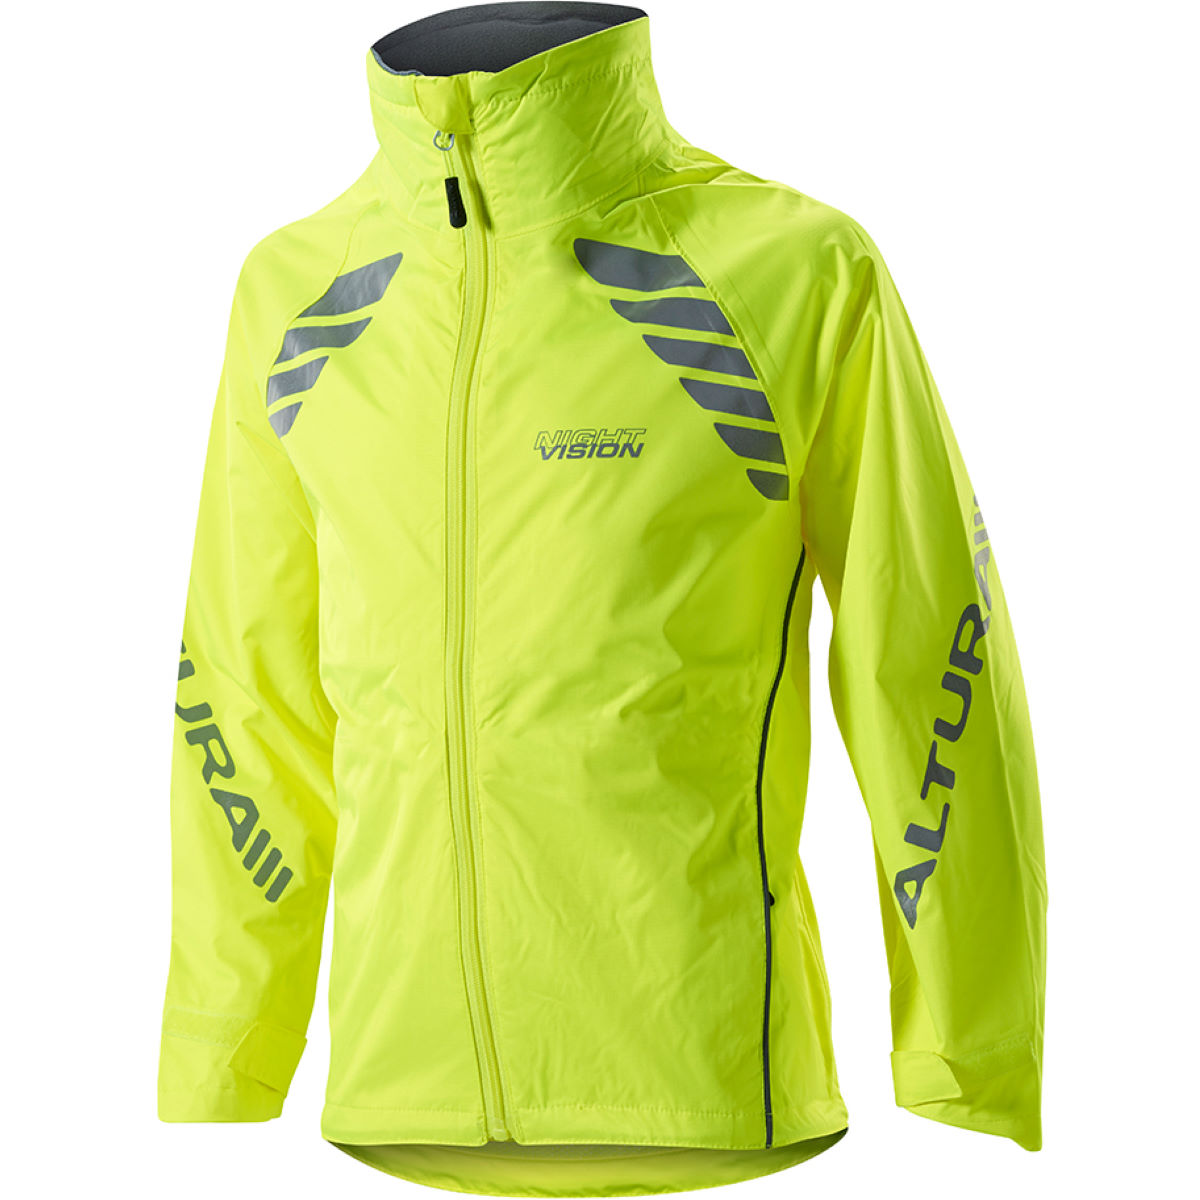 Veste Enfant Altura Night Vision - 10-12 years Jaune Vestes imperméables vélo